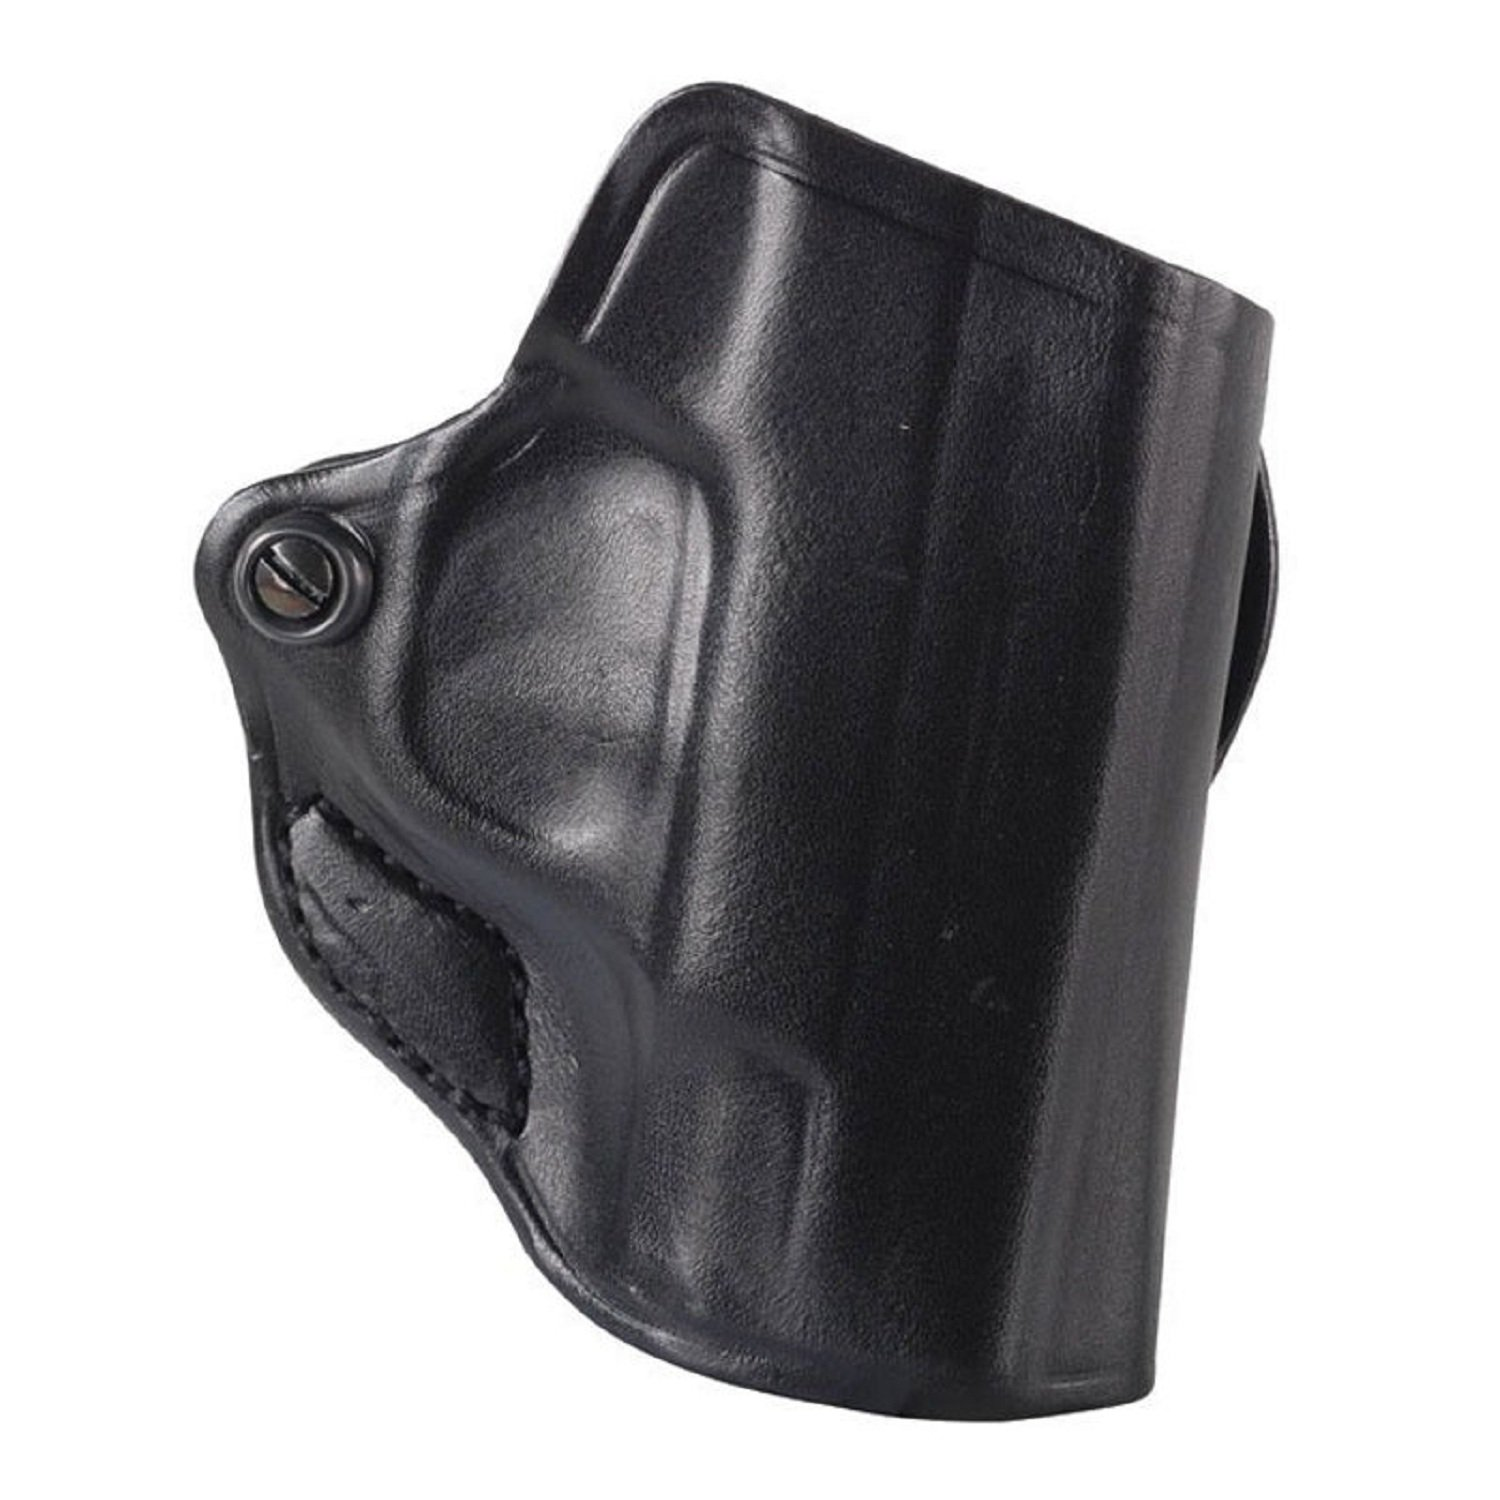 DeSantis 4007528 Mini Scabbard Black Right Hand Glock 43